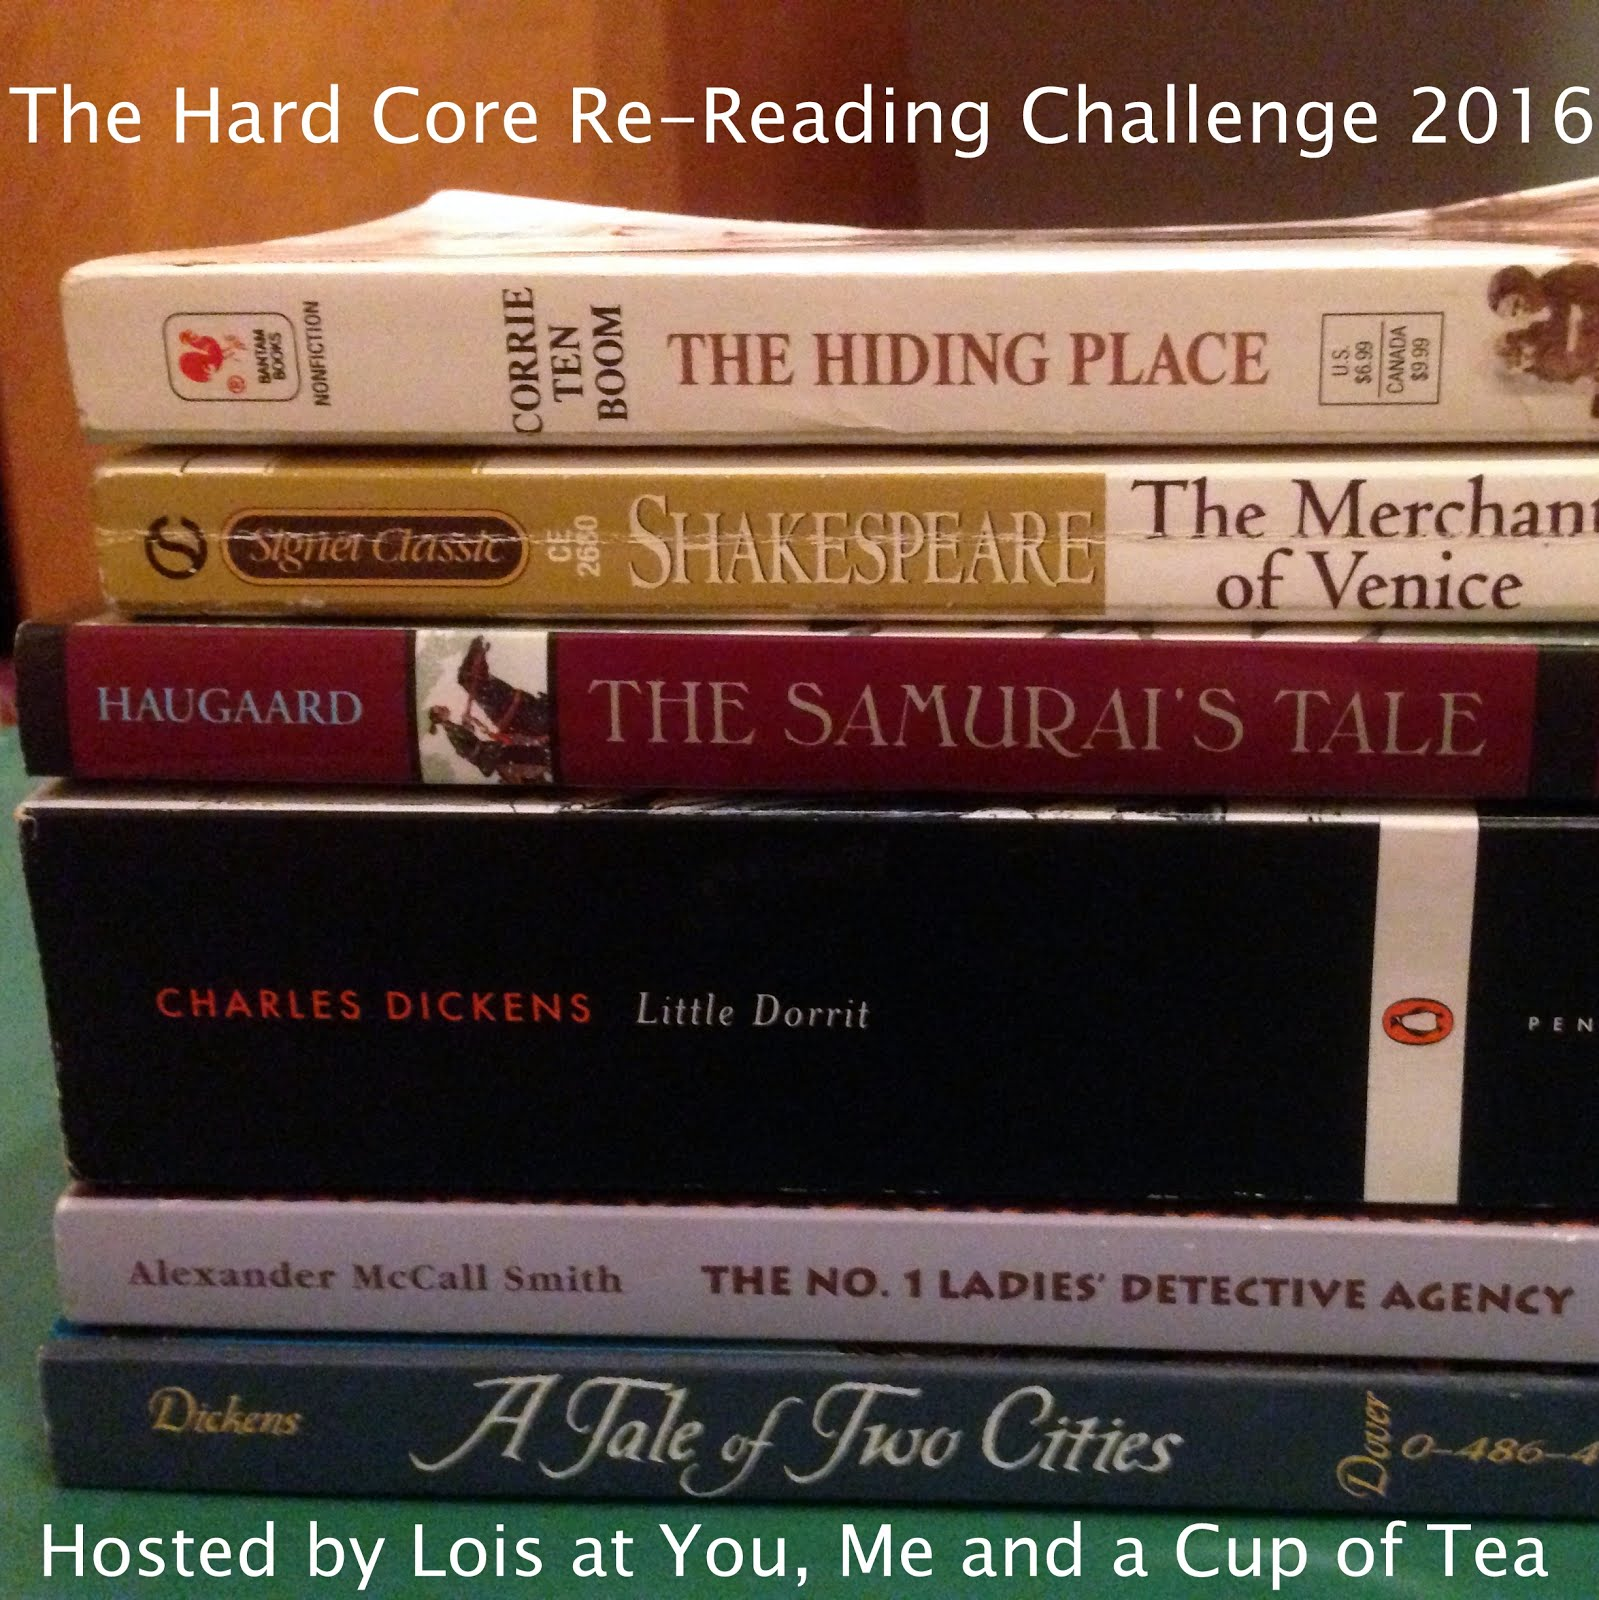 Sign up for the 2016 Hard Core Re-Reading Challenge